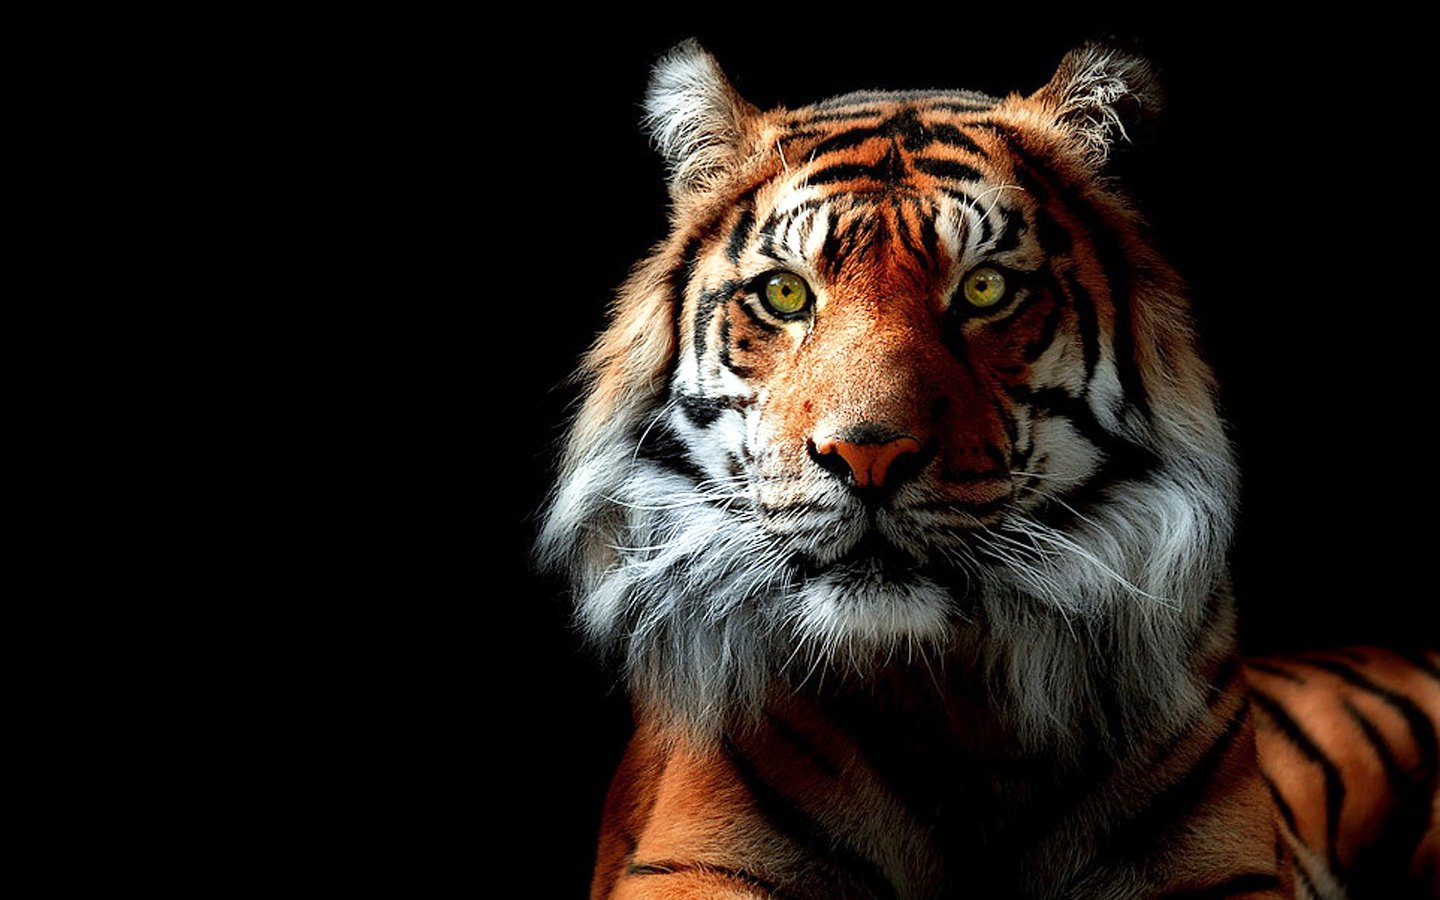 tiger background wallpaper #3